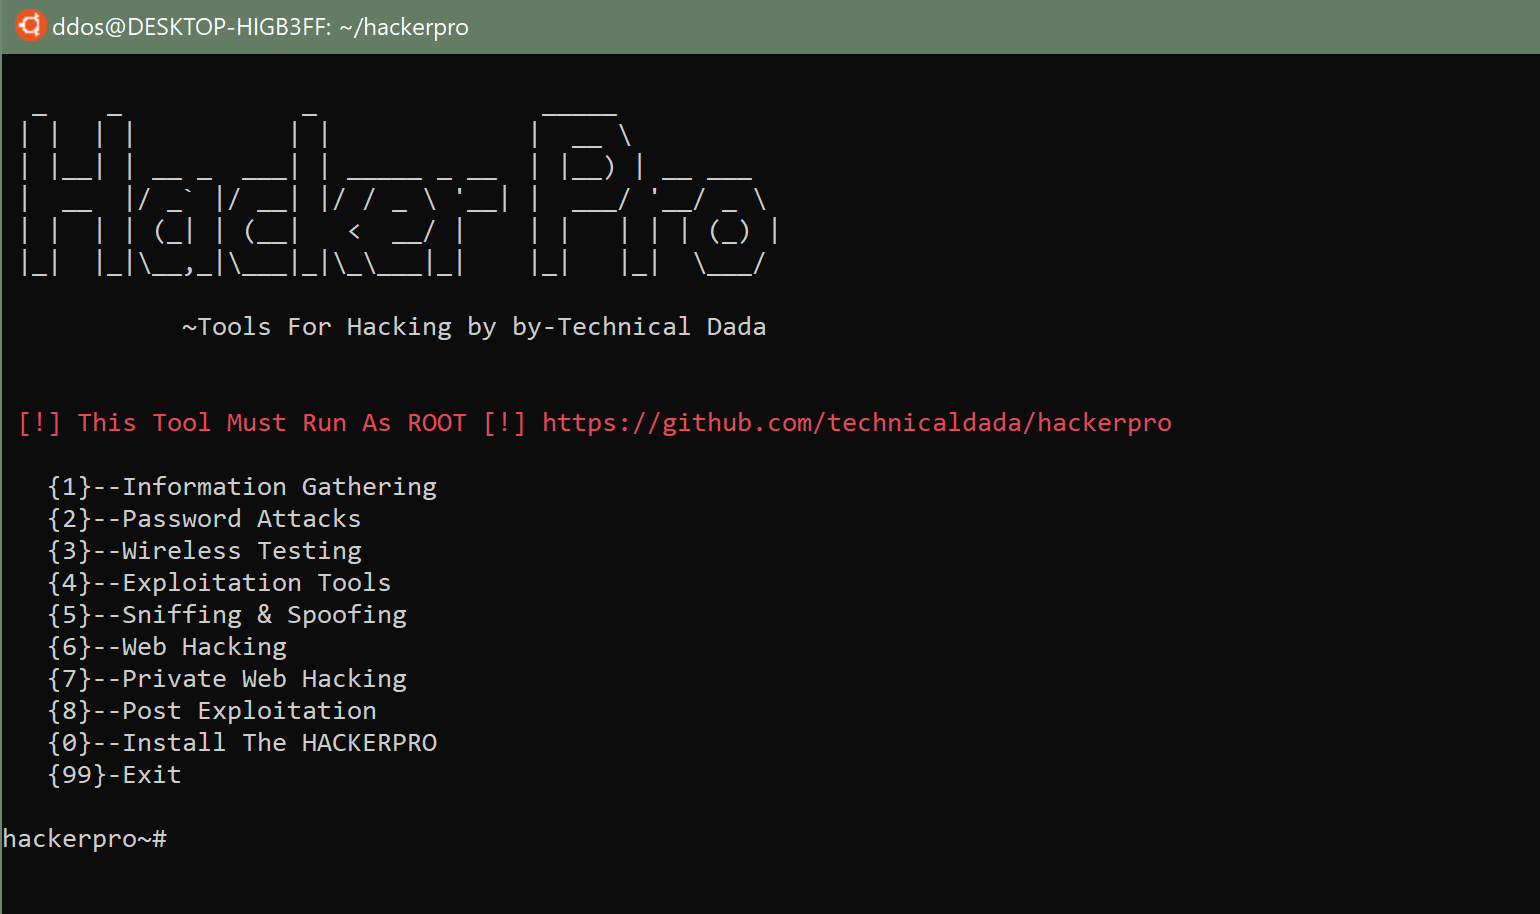 hackerpro: All in One Pentesing Tool for Linux & Android